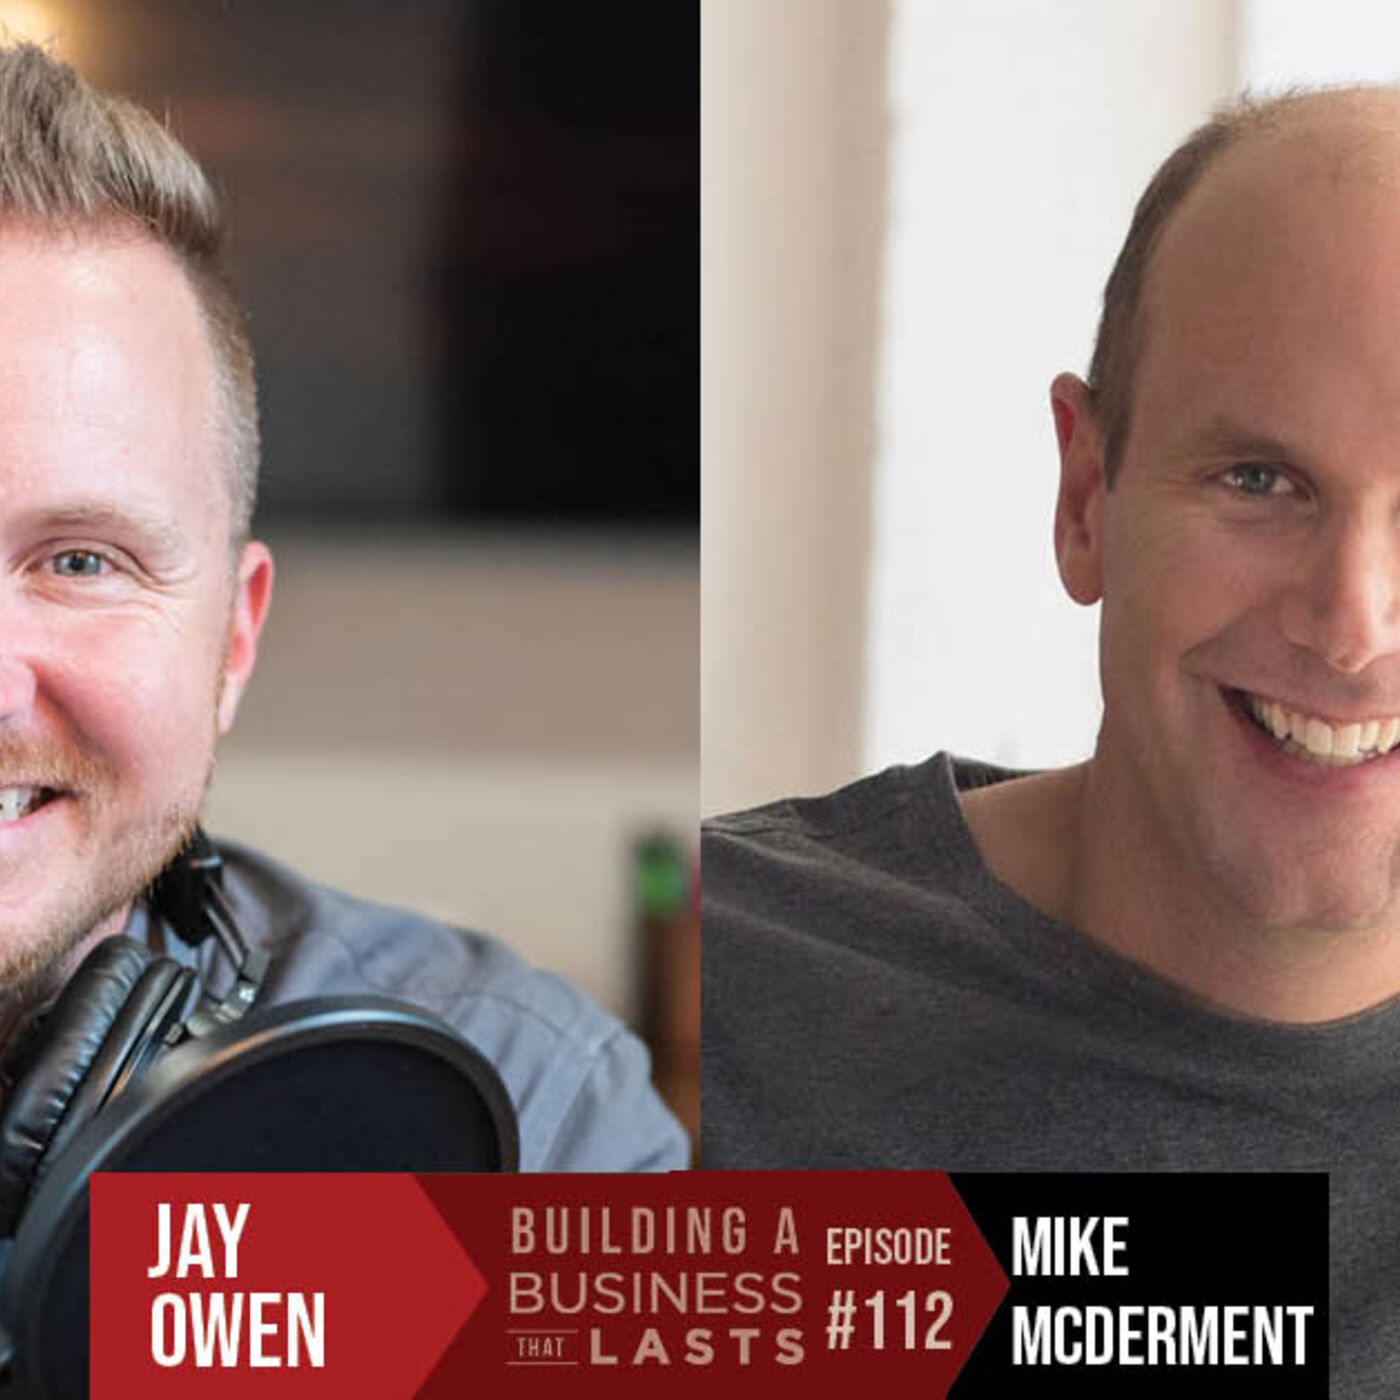 Episode 112 - The Busy Entrepreneur with Mike McDerment